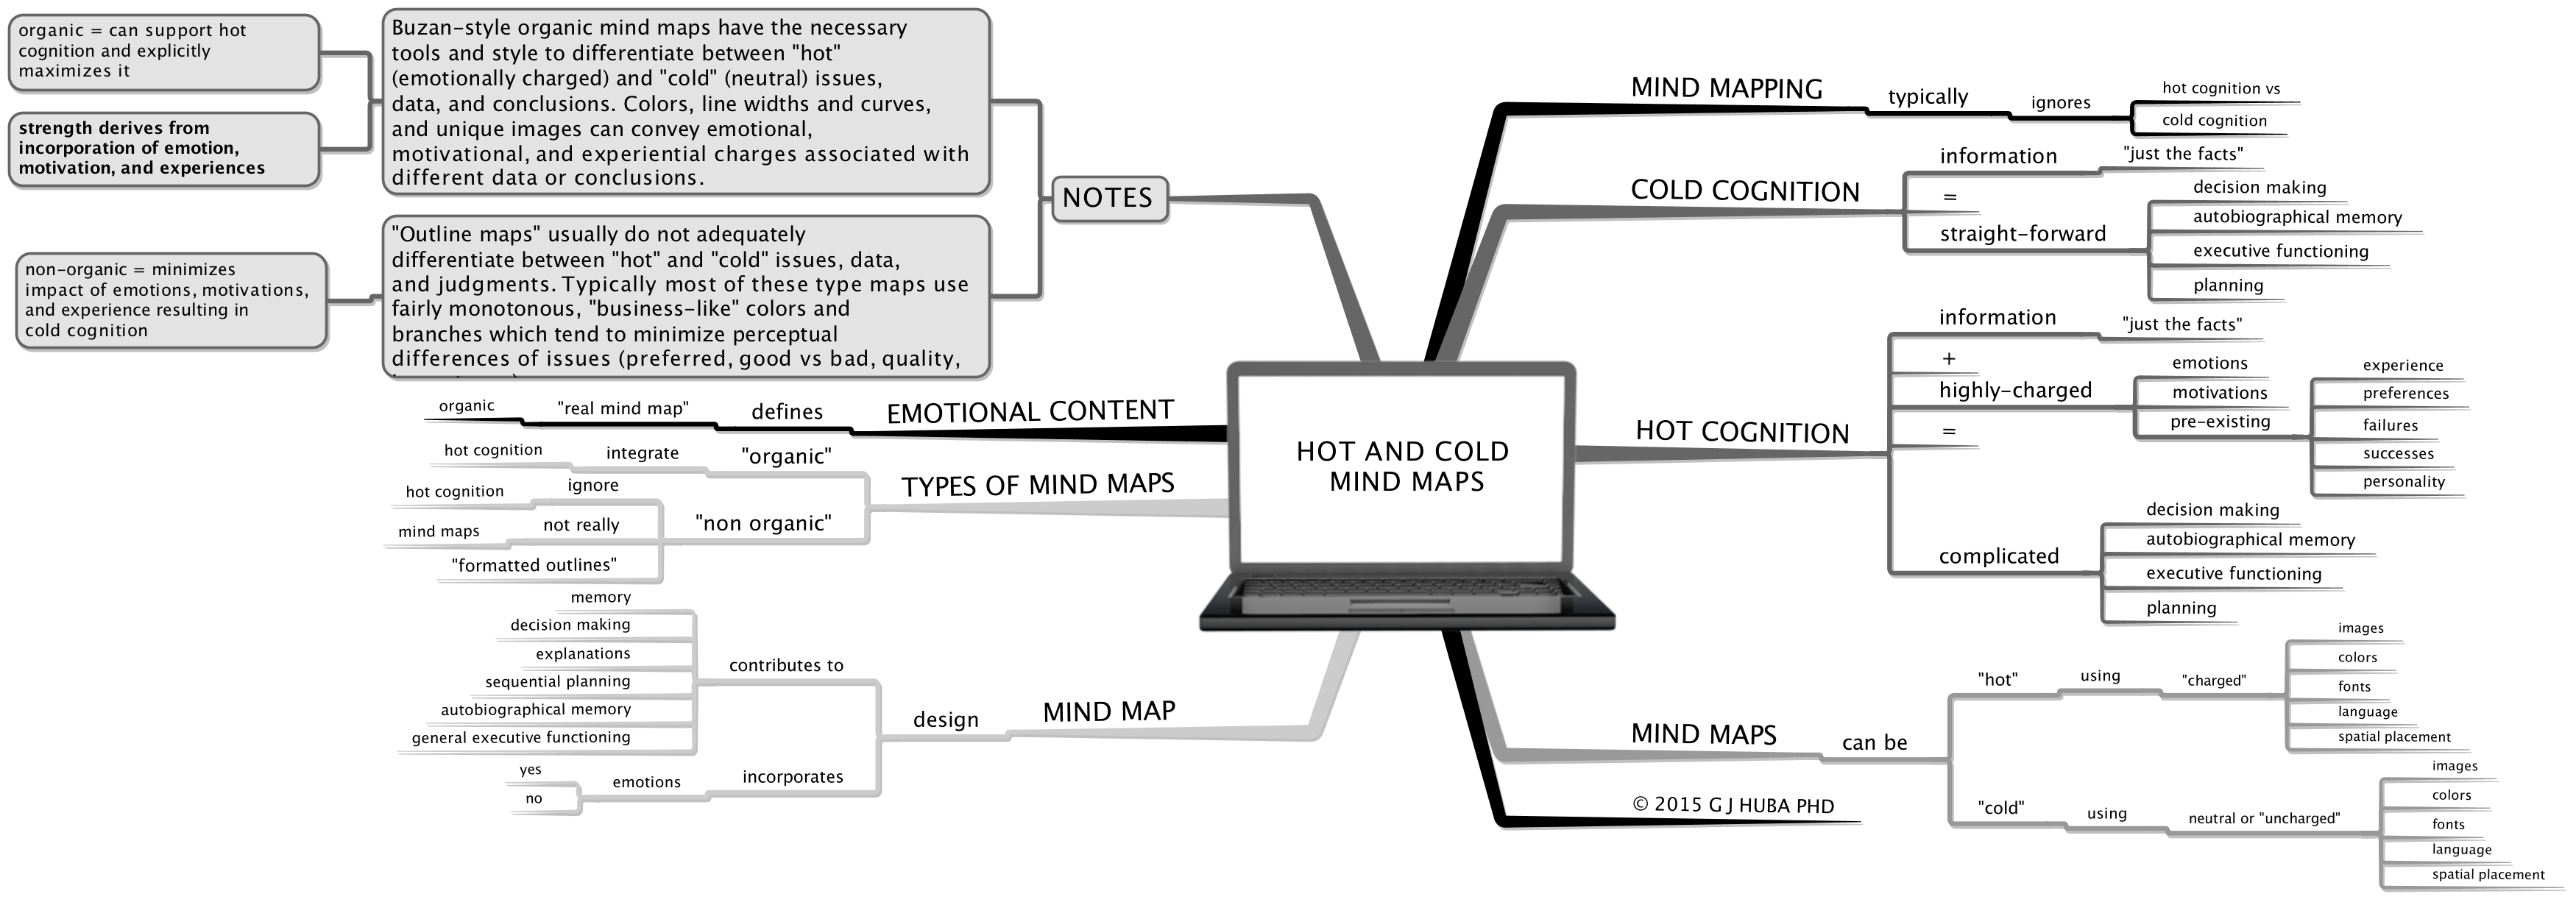 HOT AND COLD  MIND MAPS